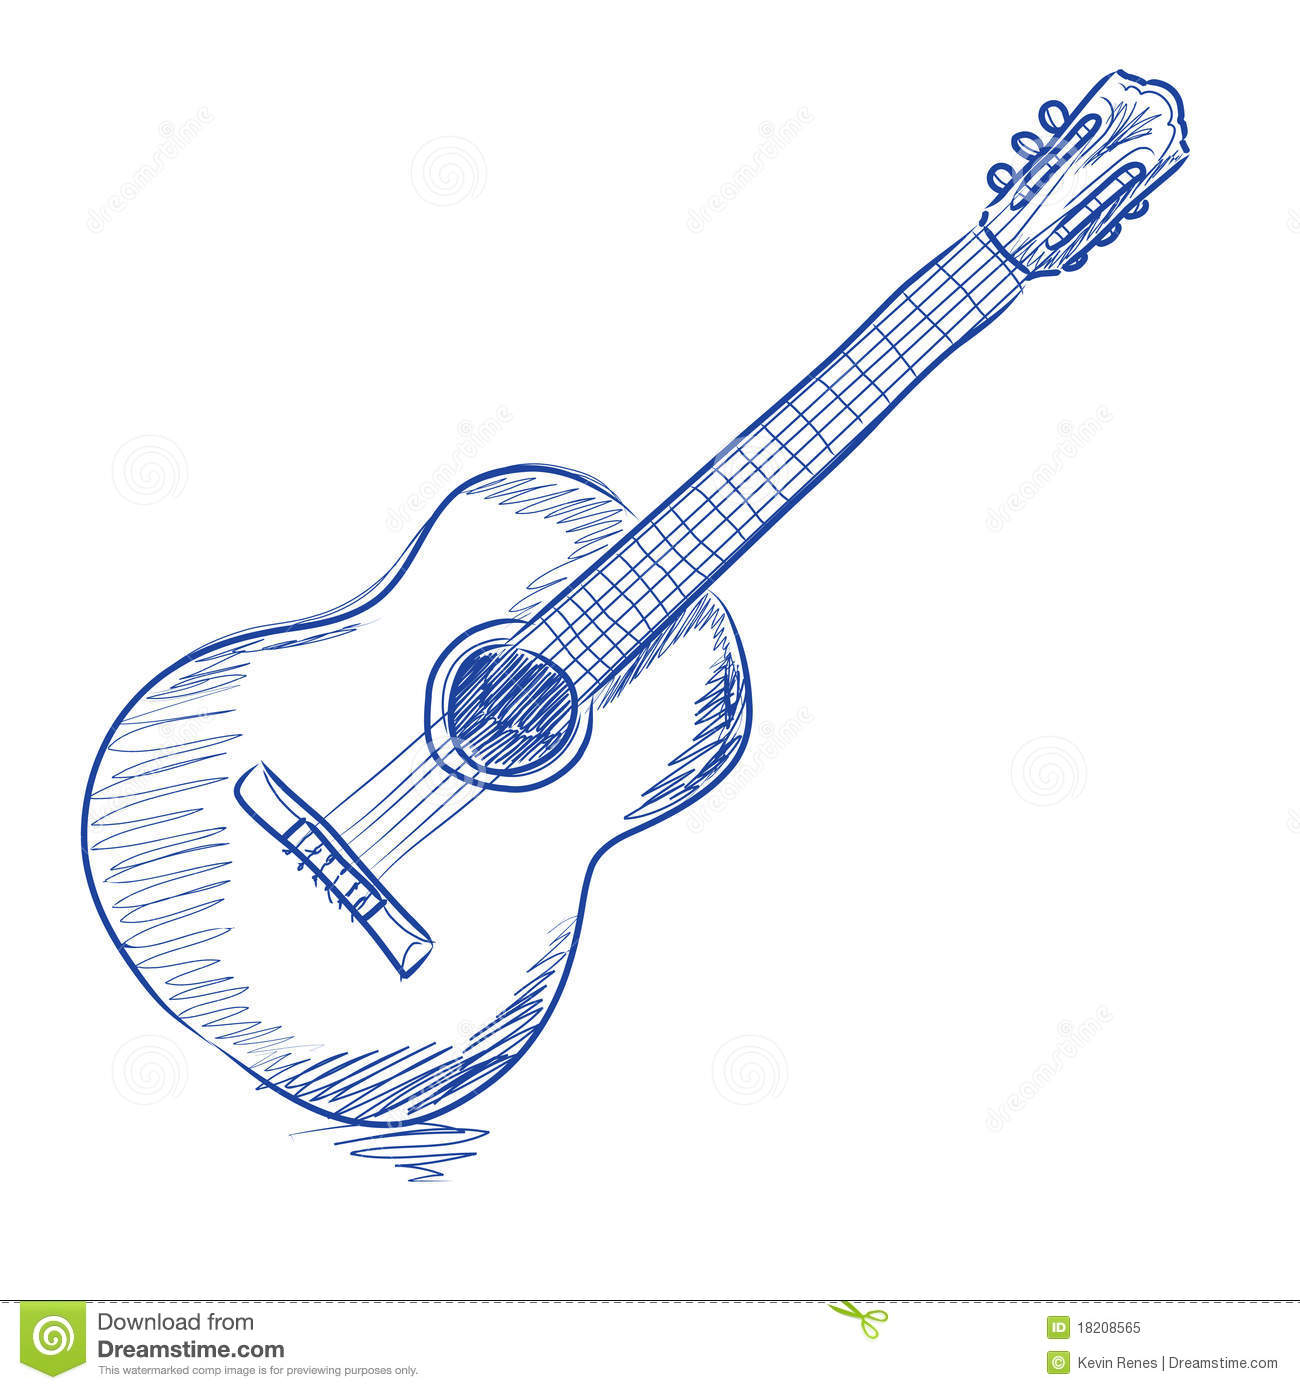 Sketched acoustic guitar